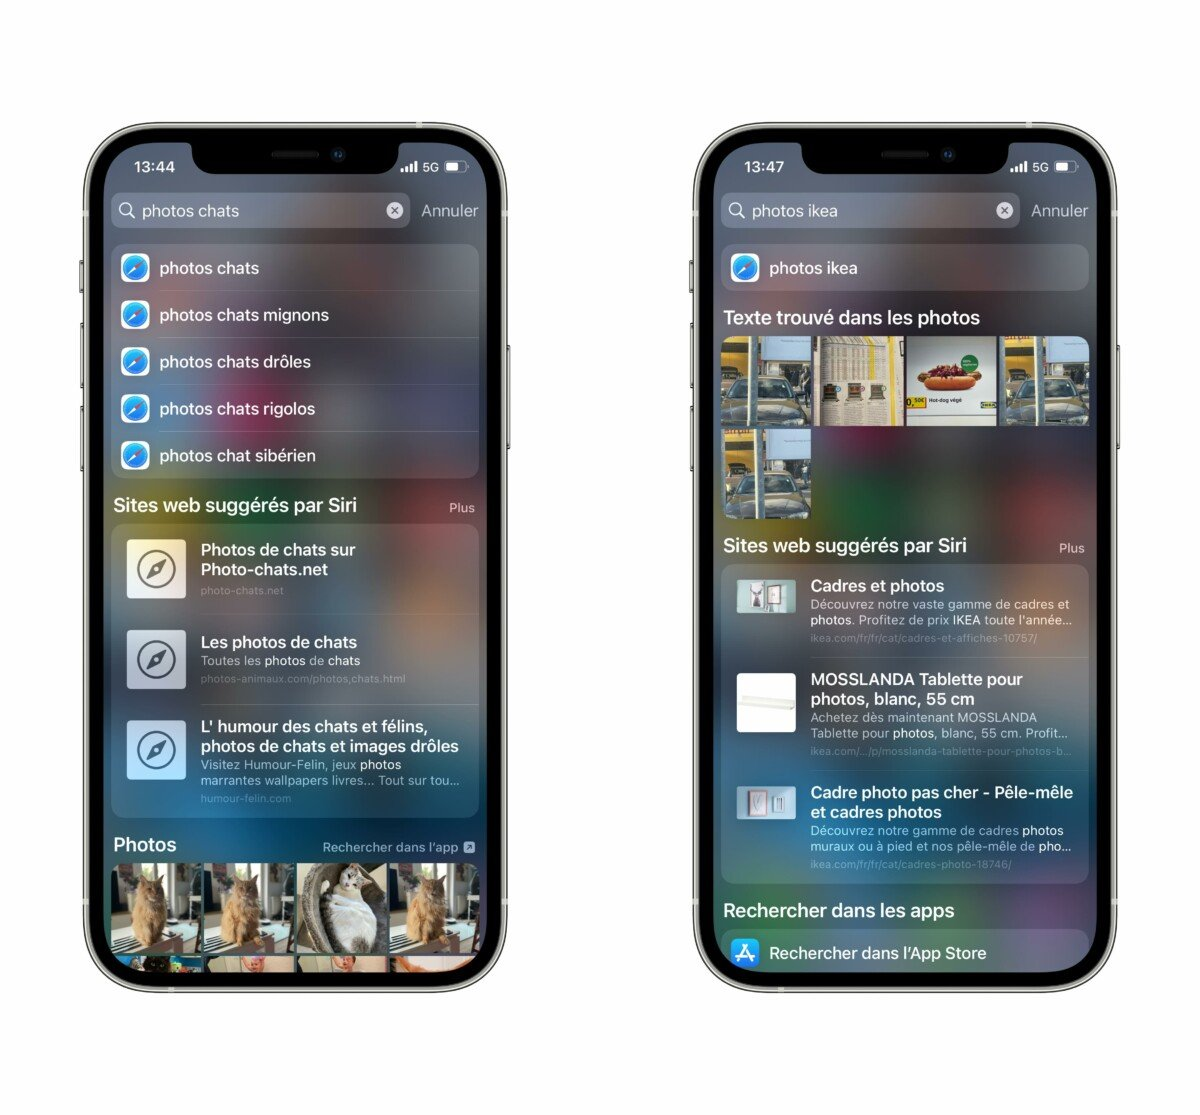 Advanced search, photo search capability and even text within photos